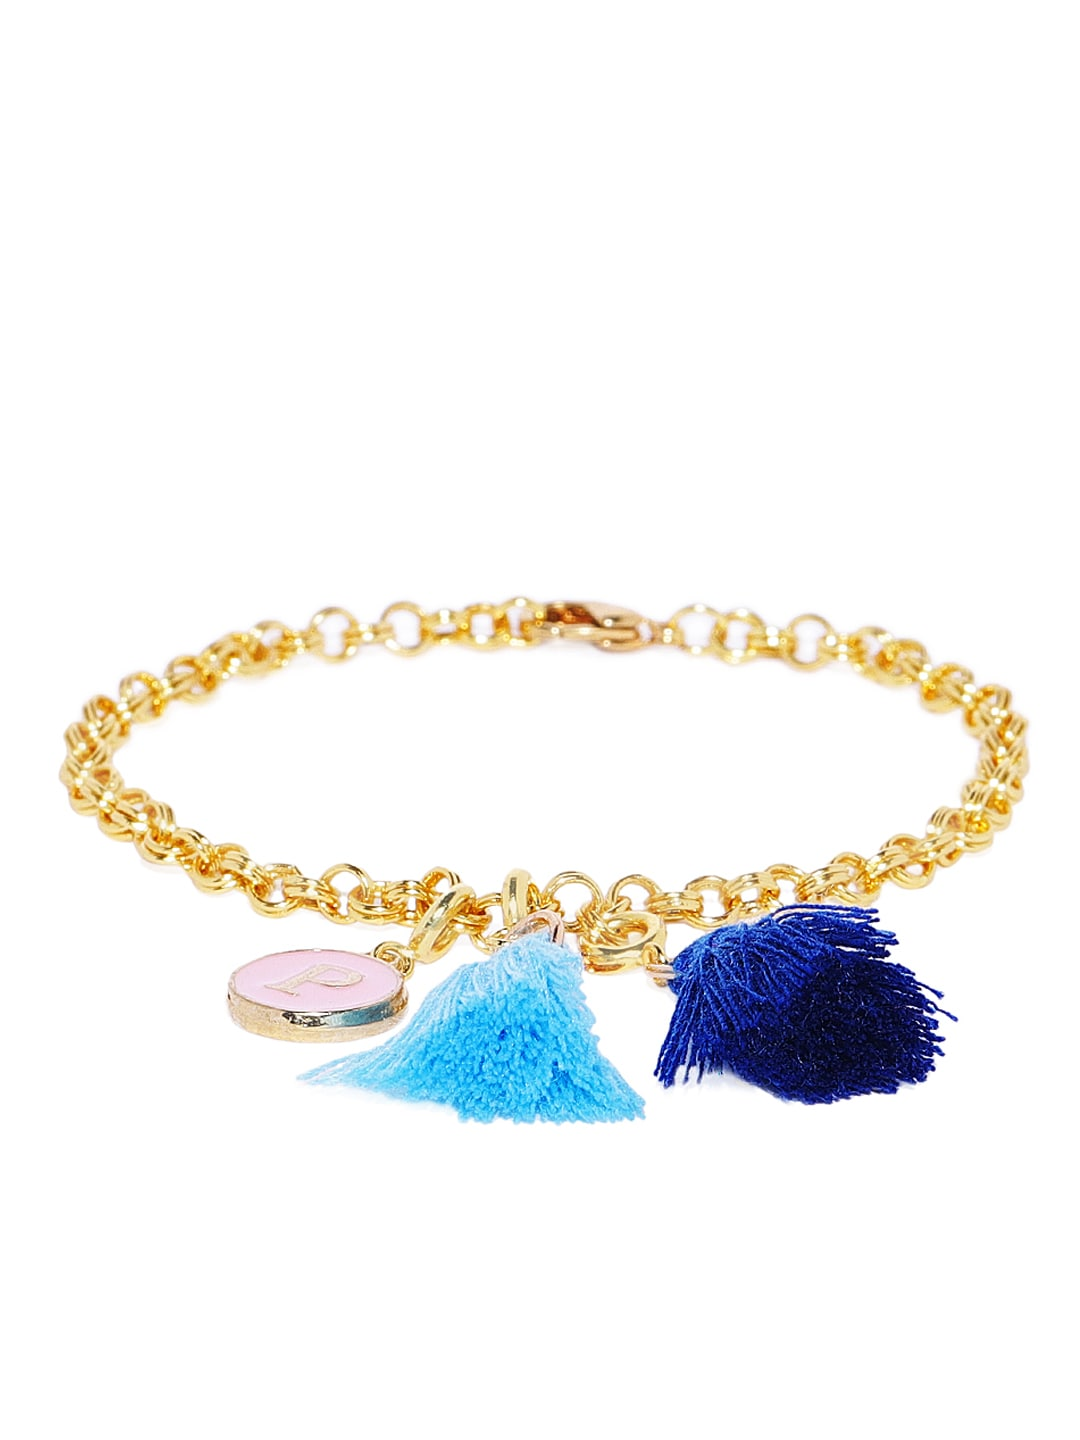 Tipsyfly Gold-Toned Alloy Gold-Plated Charm Bracelet